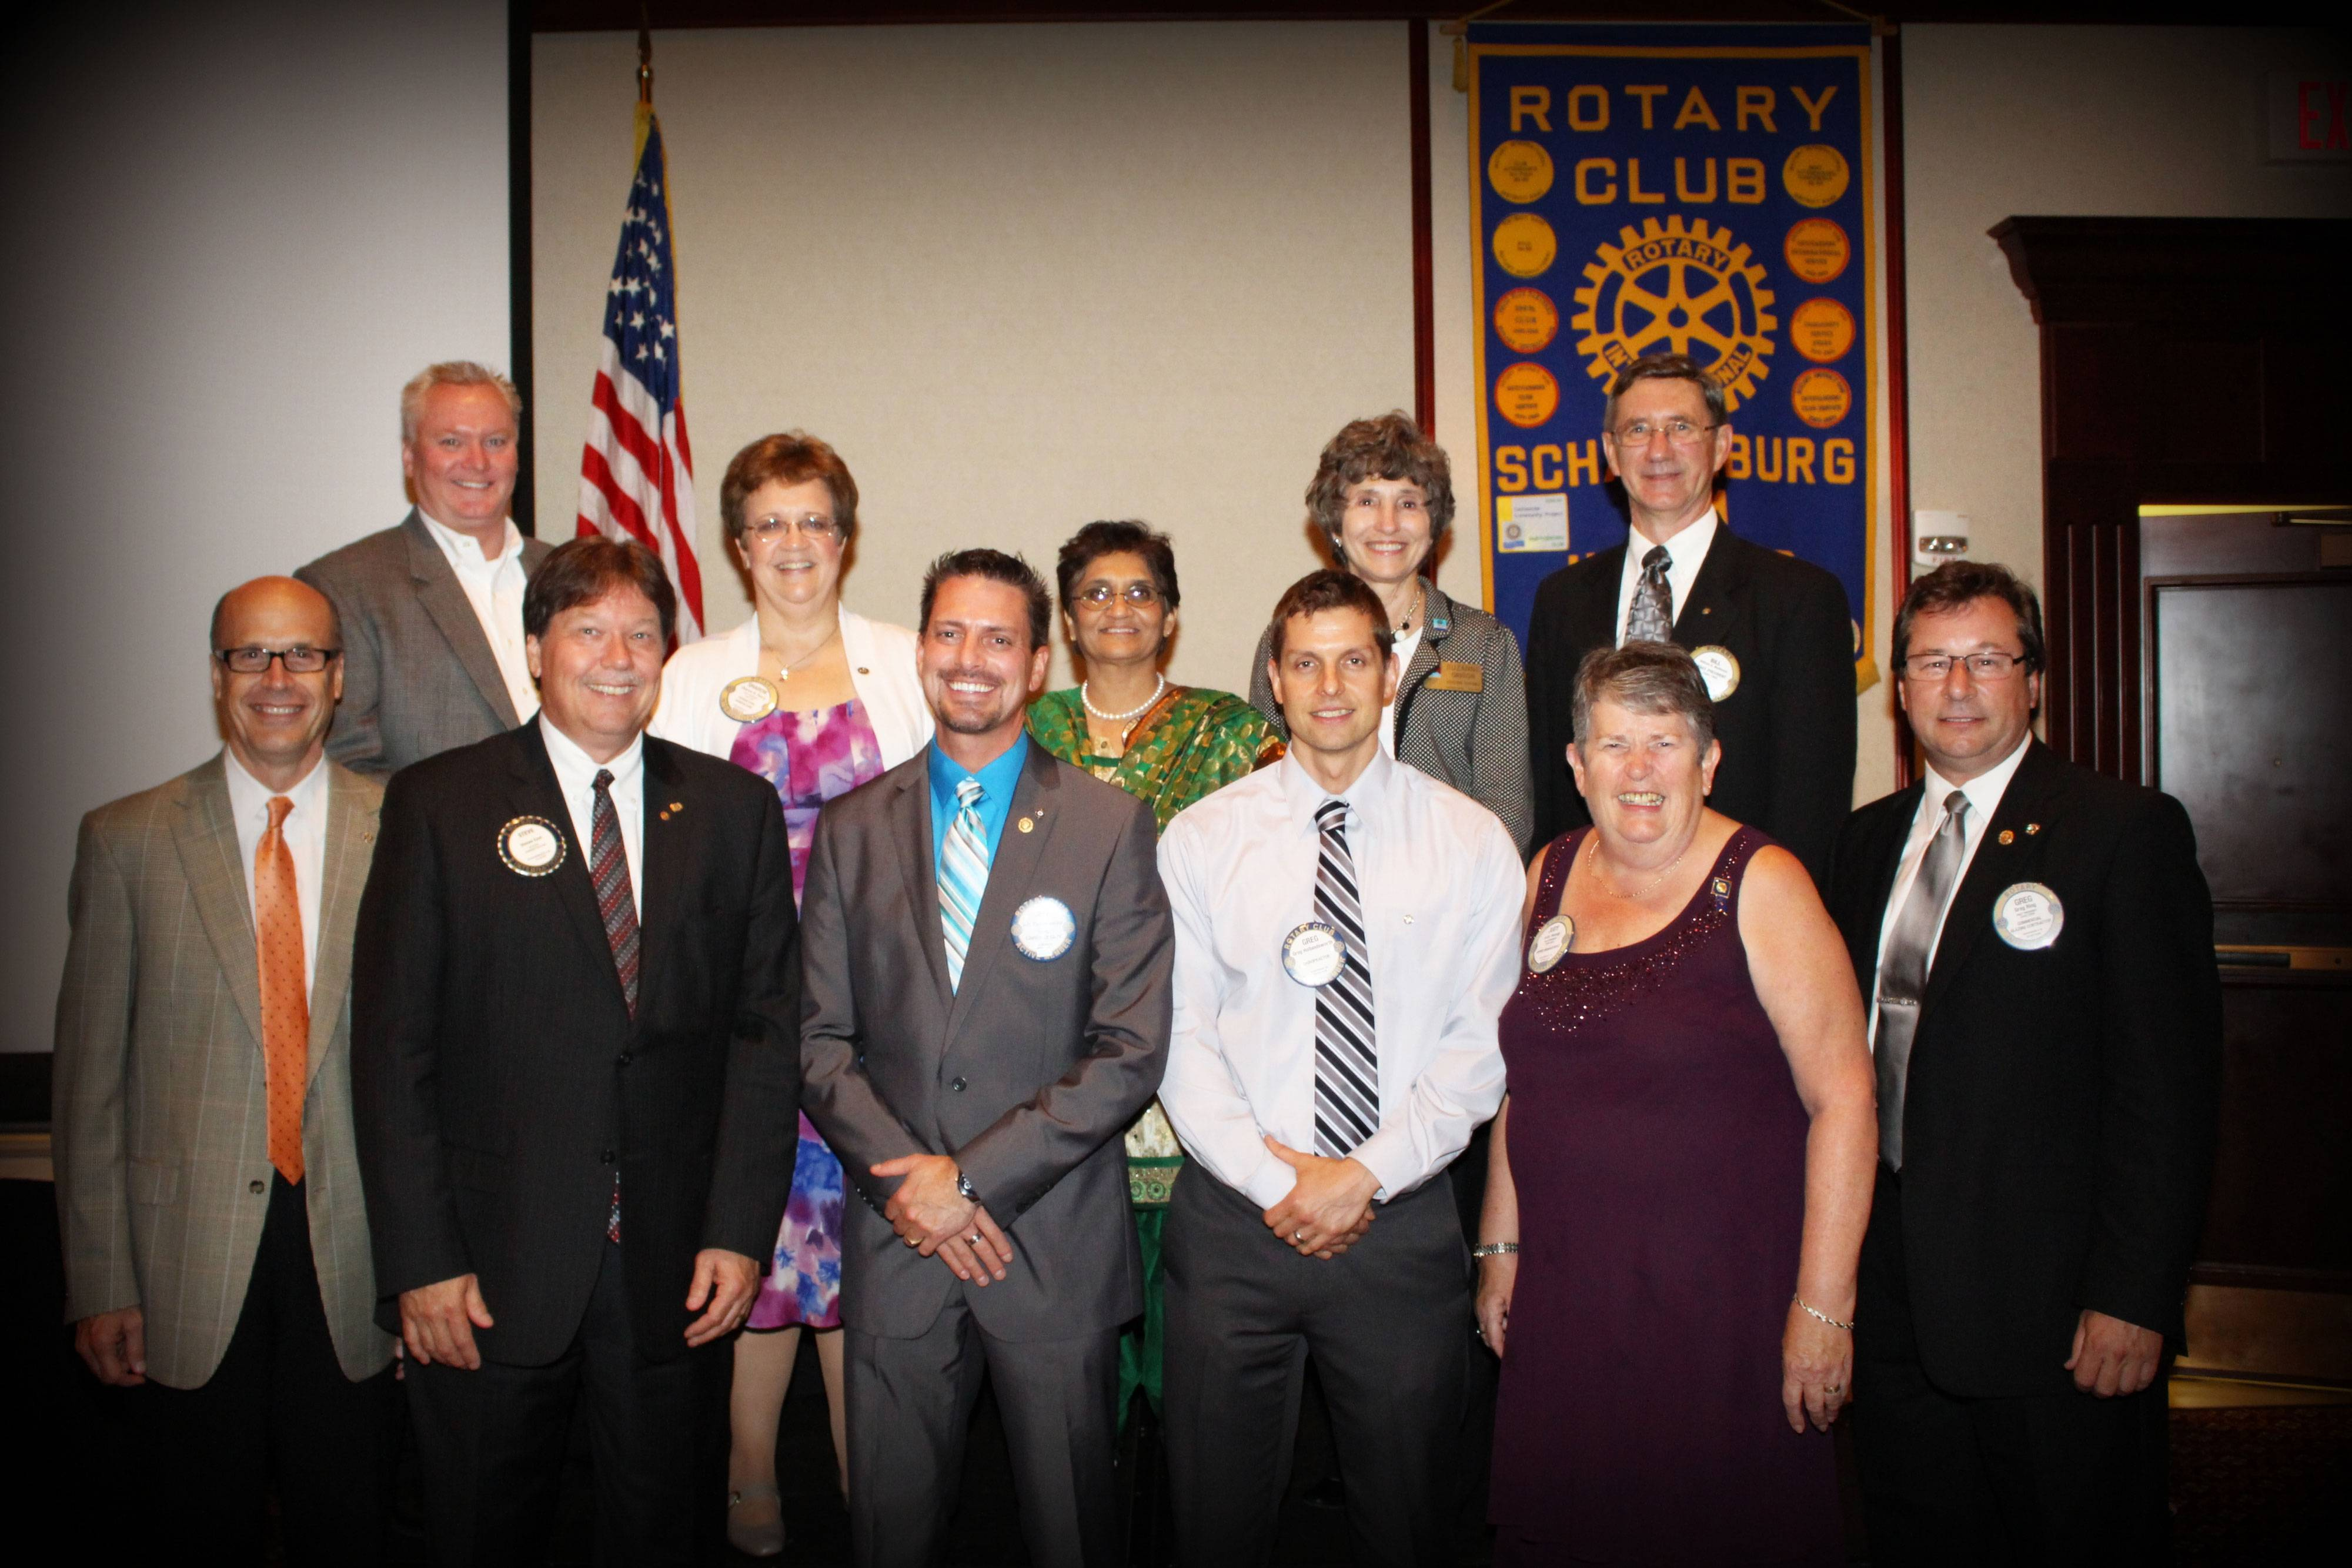 2013/2014 Schaumburg A.M. Rotary Board of Directors includes -  Front Row - L to R - Tim Gerhardt - International & Youth Service Director, Steve East - President Elect, Jeff Winkenwerder -President, Greg Hollandsworth - Vocational Service Director, Judy Hennip - Treasurer, & Greg Ring - Immediate Past President  Back Row - L to R - Brian Bieschke - Club Service Director, Sharon Perry - Public Relations, Vibha Tambe - Community Service Director, Suzanne Gibson, - Dist. 6440 Asst. Governor & Bill Matthews - Secretary